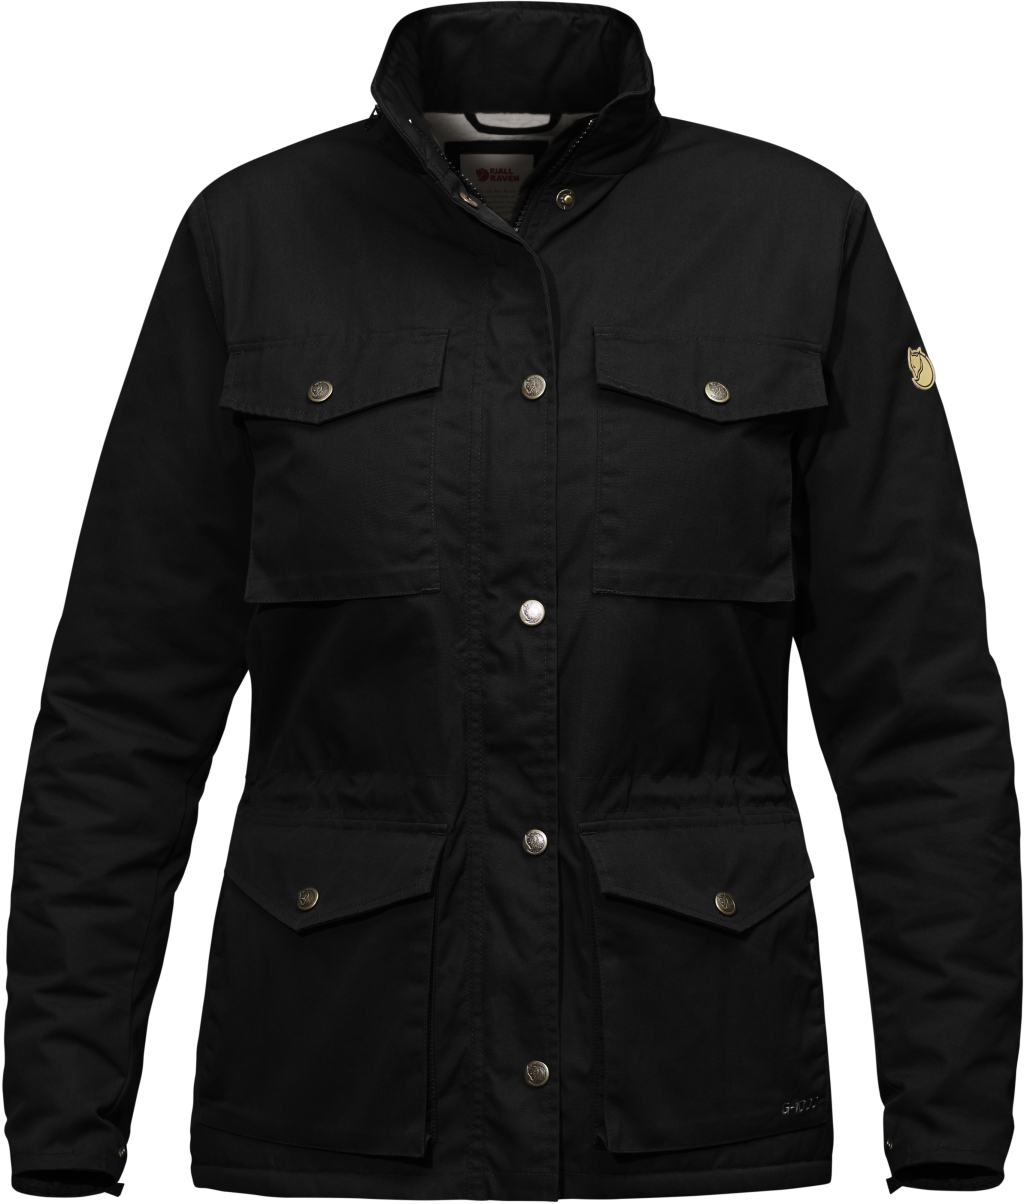 FjallRaven Raven Winter Jacket W Black-30